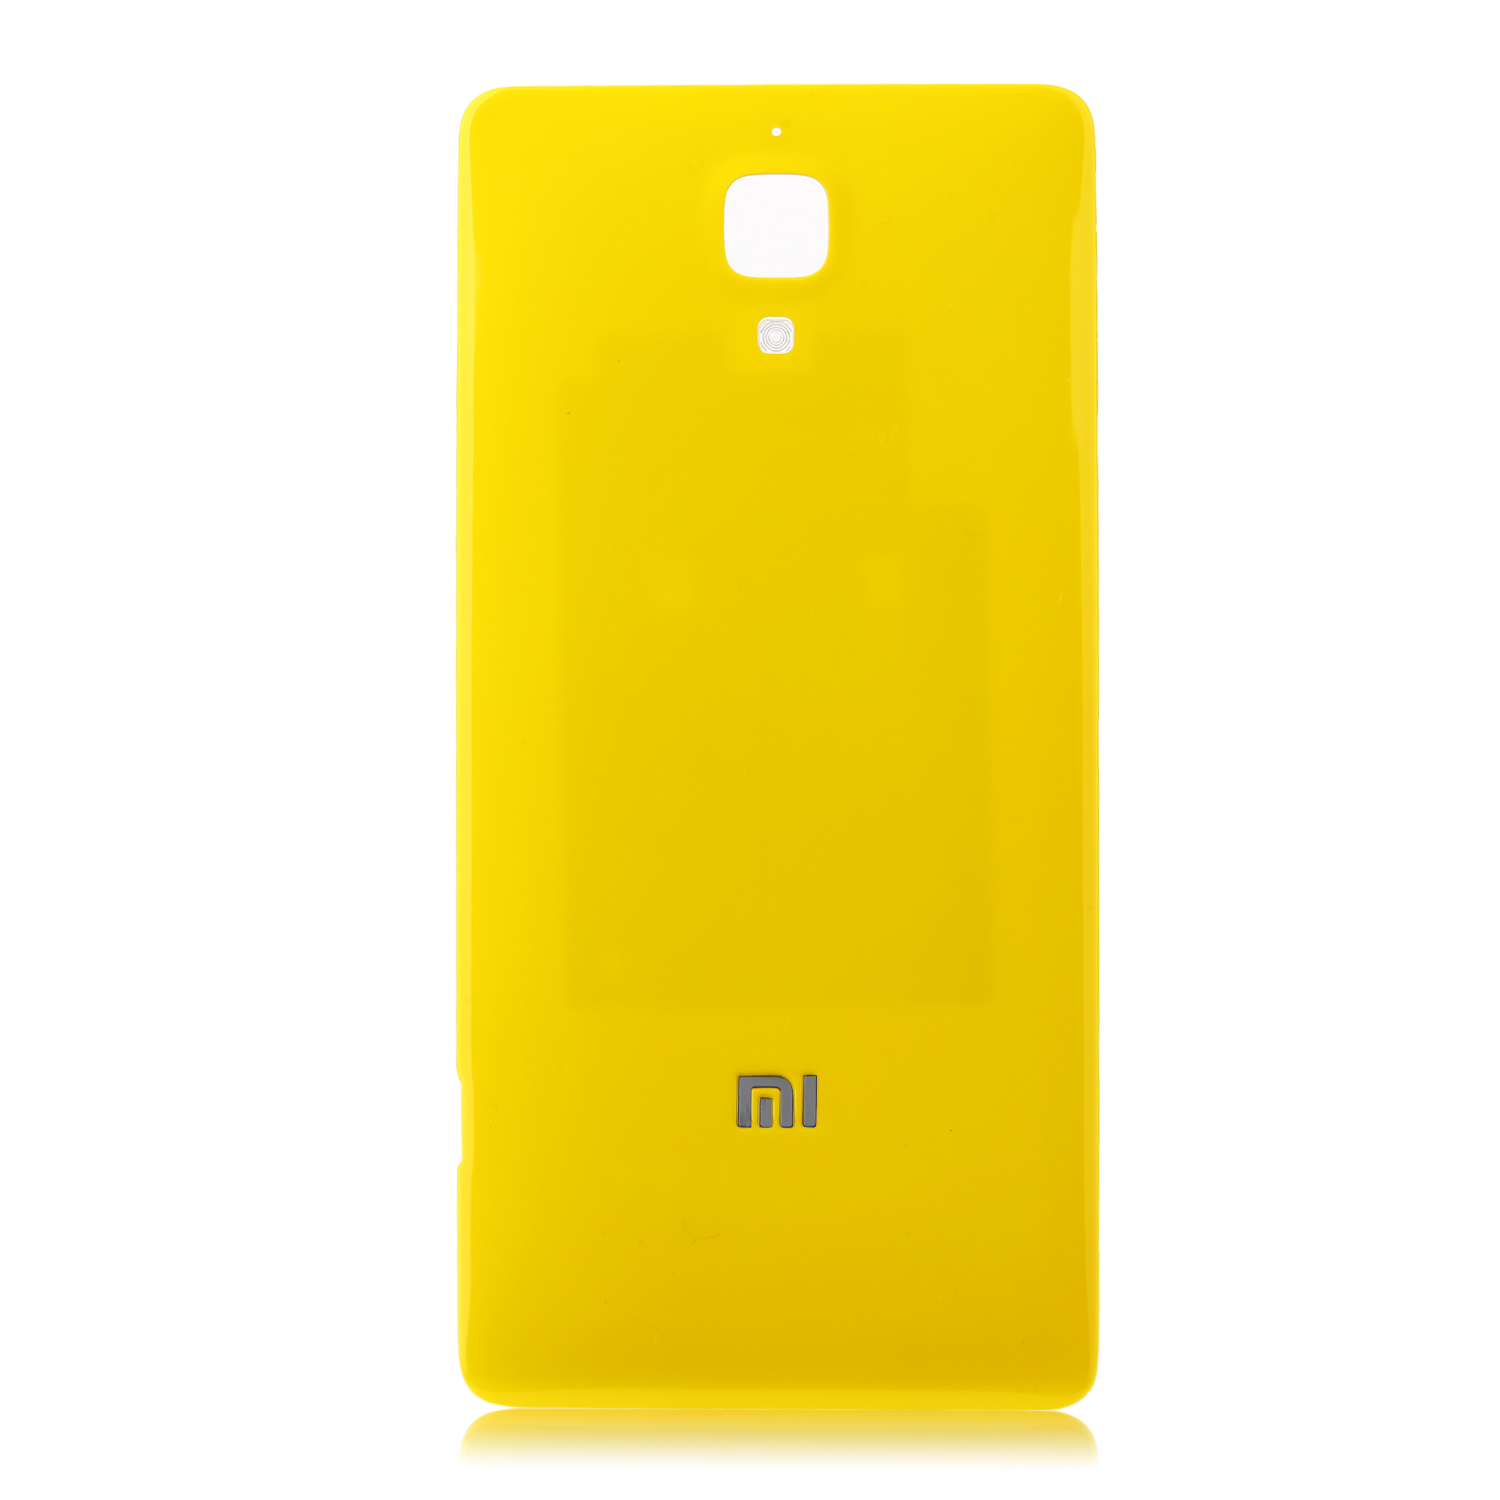 Replacement Battery Cover Back Case for XIAOMI MI4 Smartphone Yellow